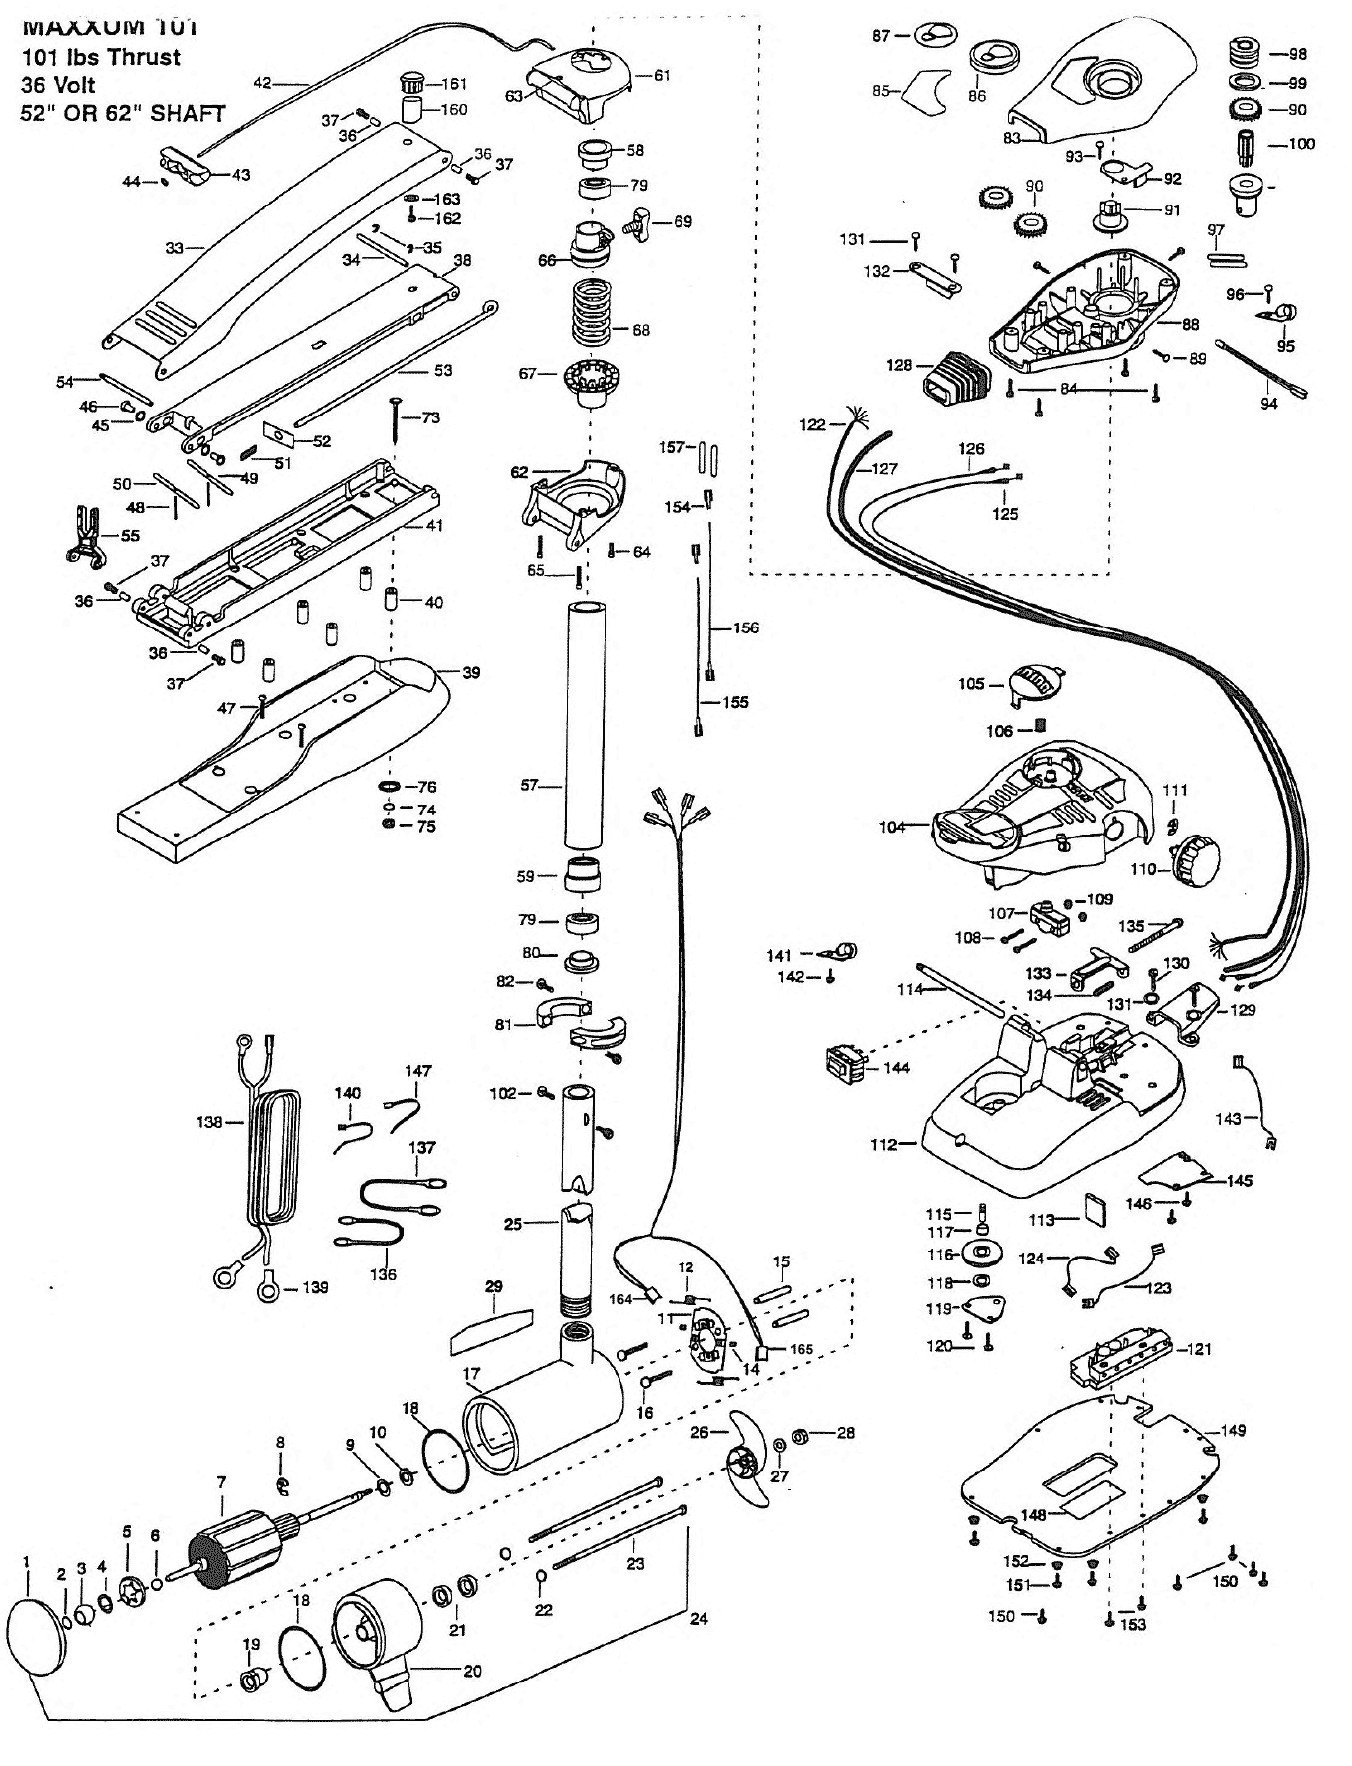 Minn Kota Wiring Diagram Manual